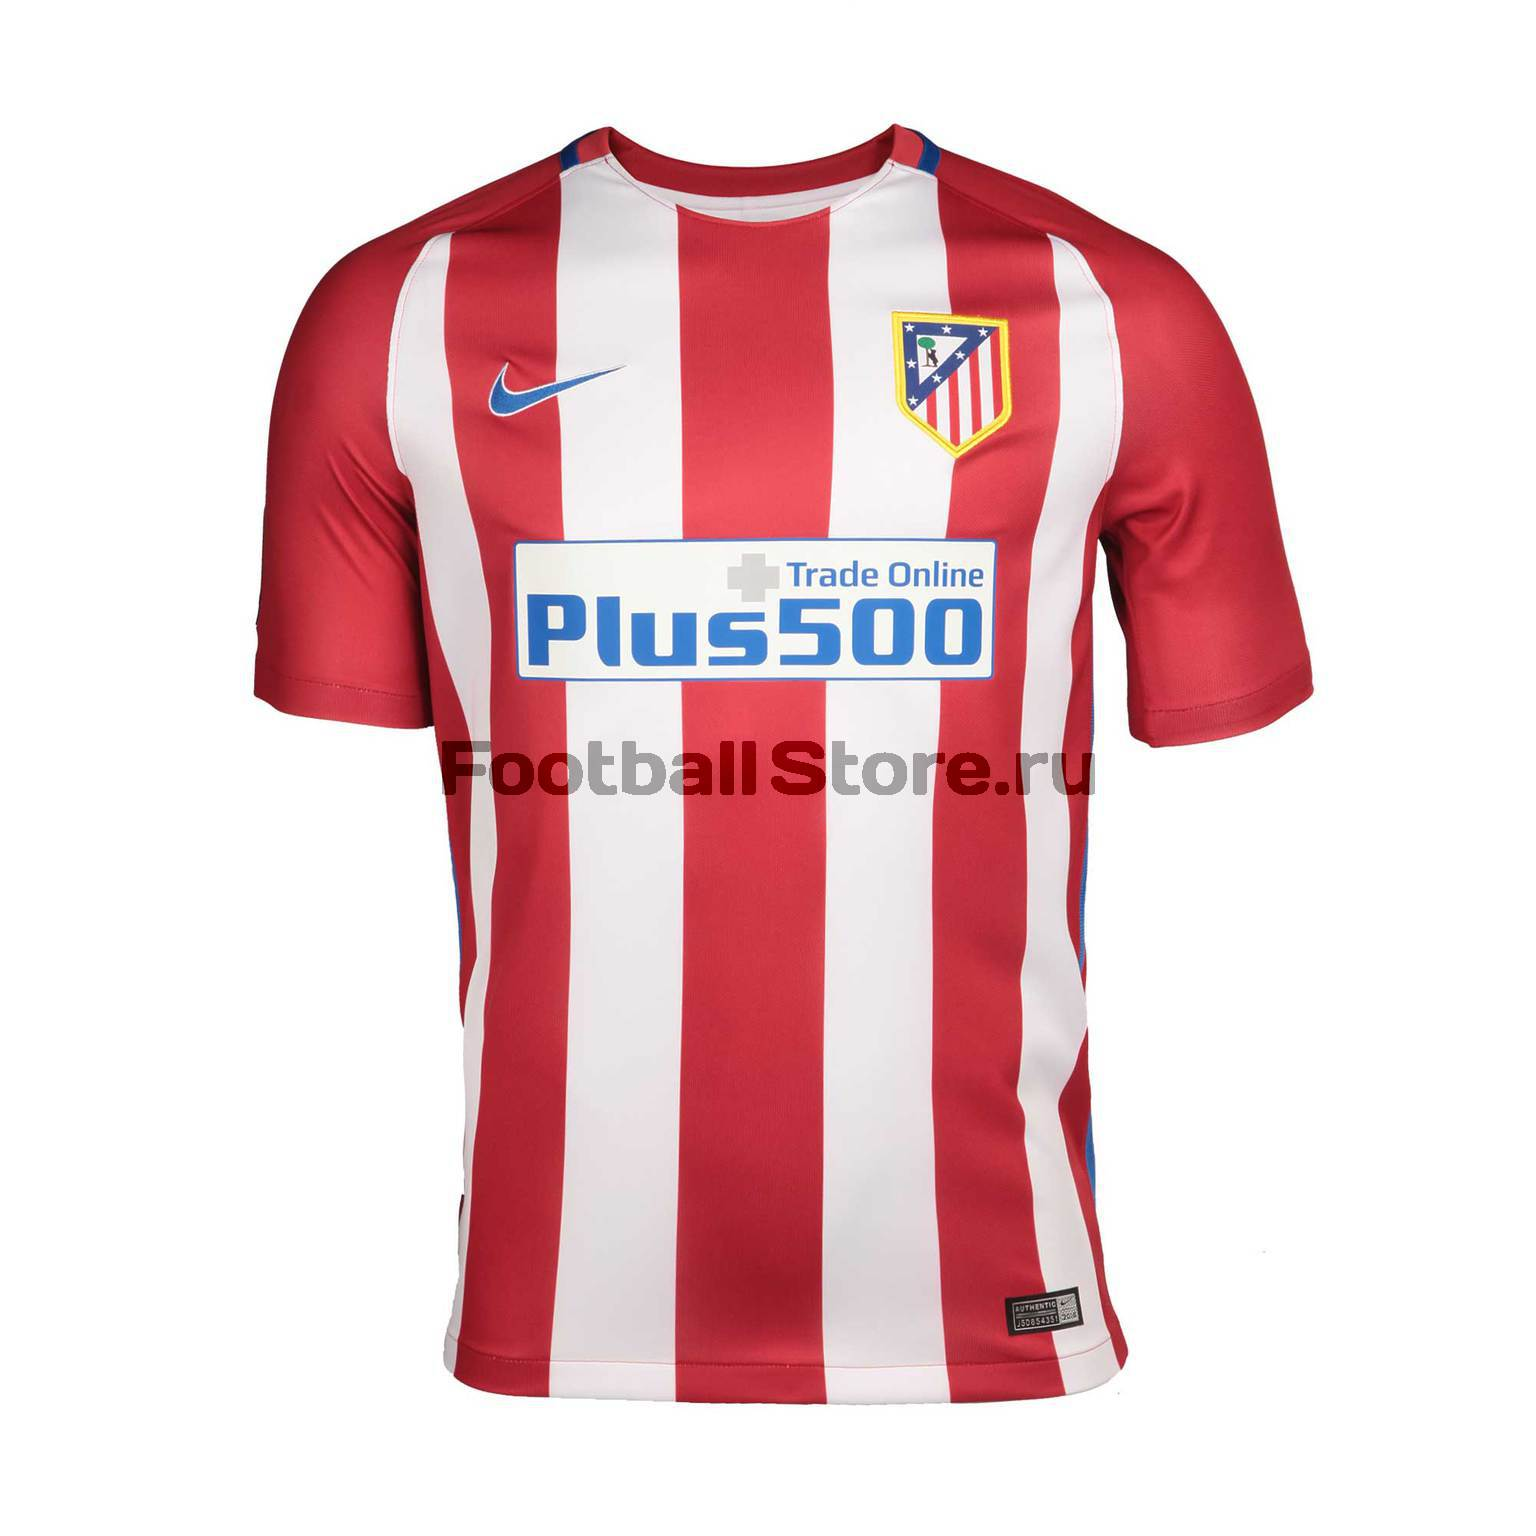 Футболка игровая Nike Atletico Madrid Home Stadium JSY 808308-649